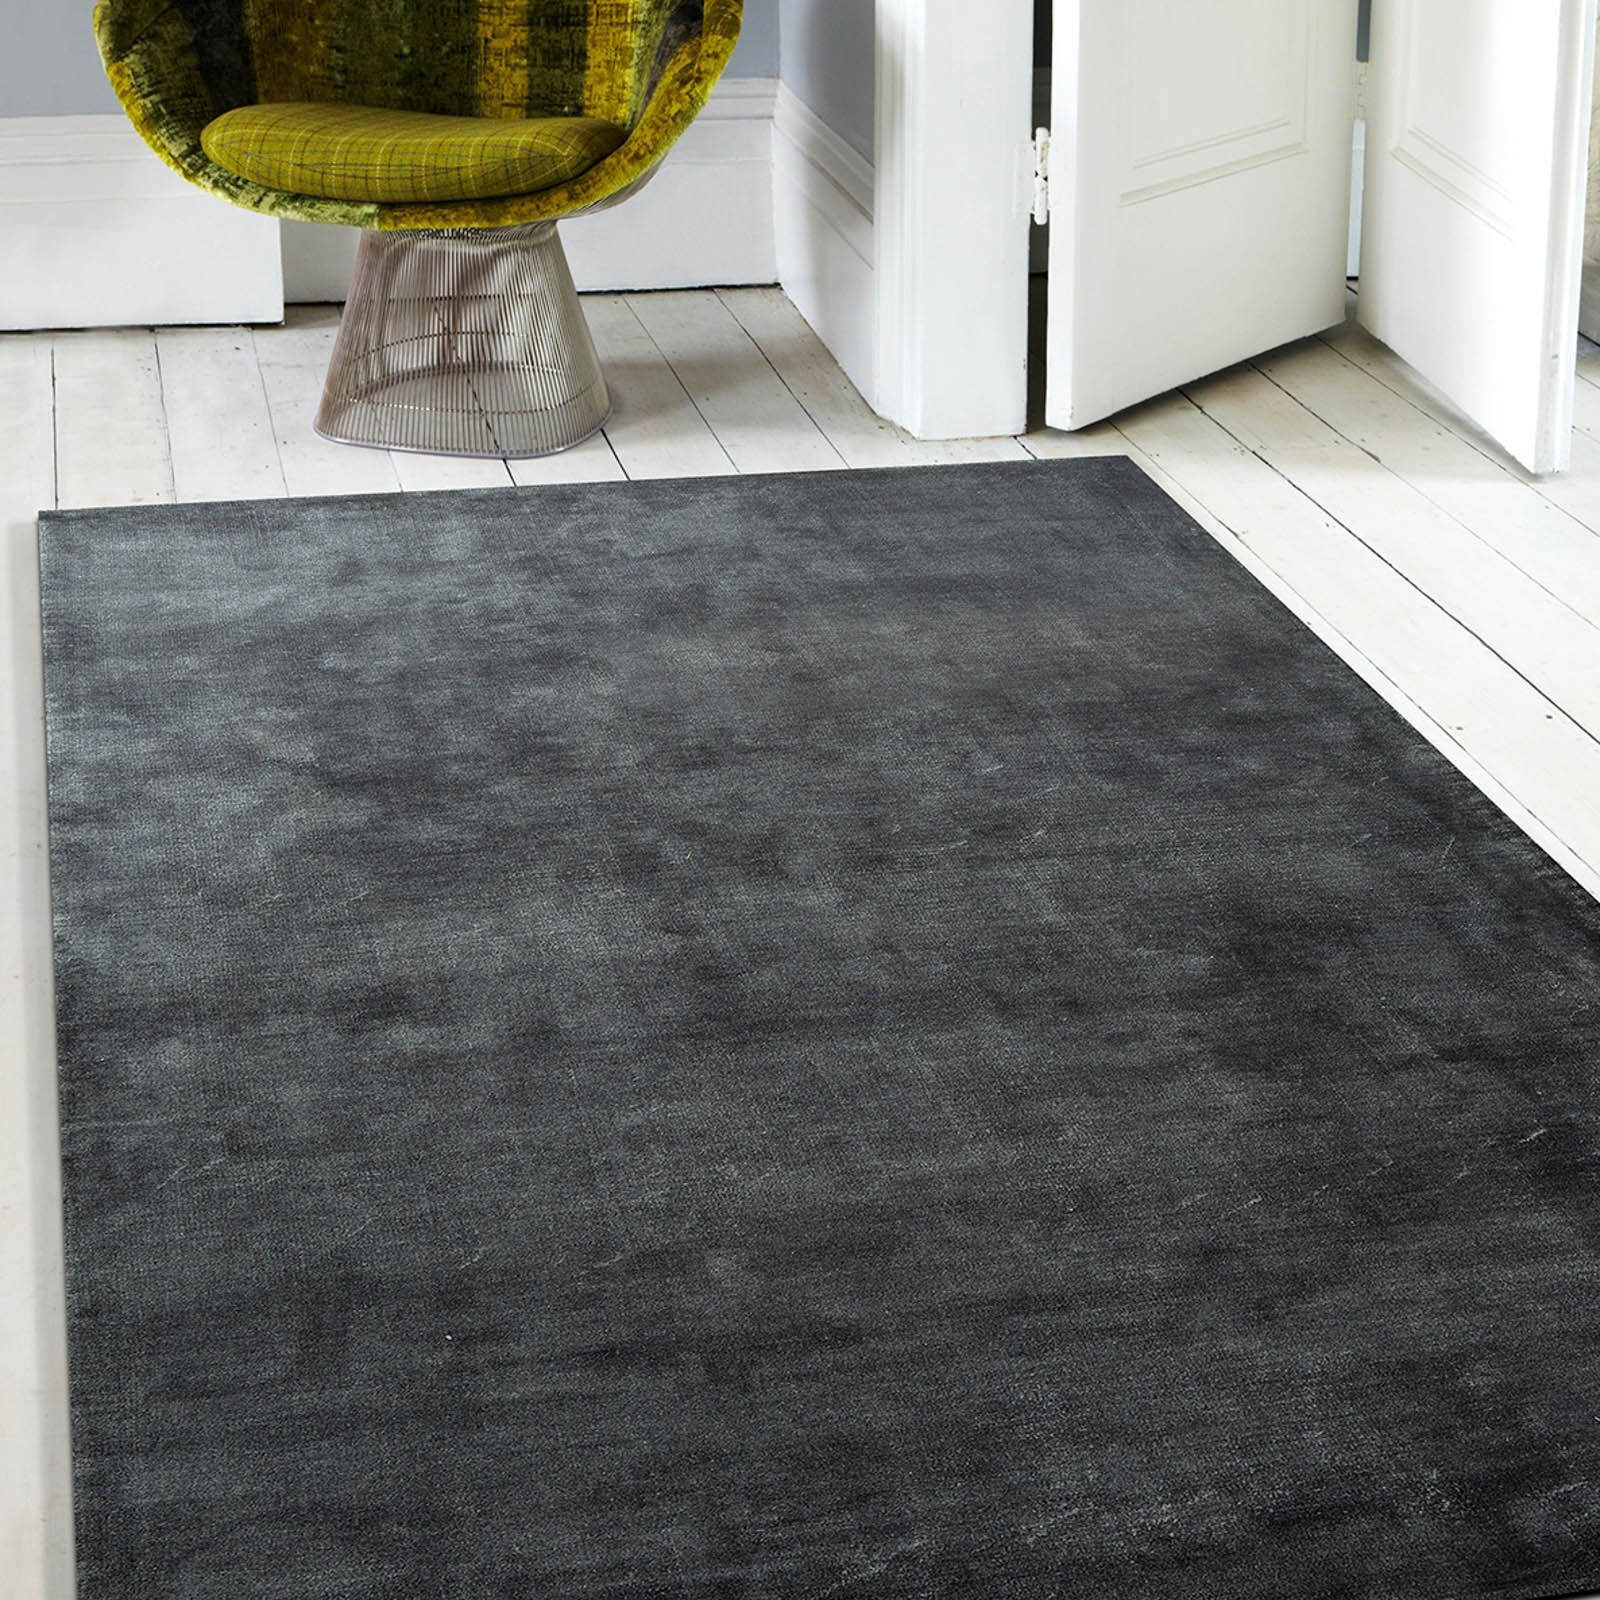 Velvet Underground Rugs feature a beautiful lustre that will suit any classic room setting. #InteriorDesign #DecorTips